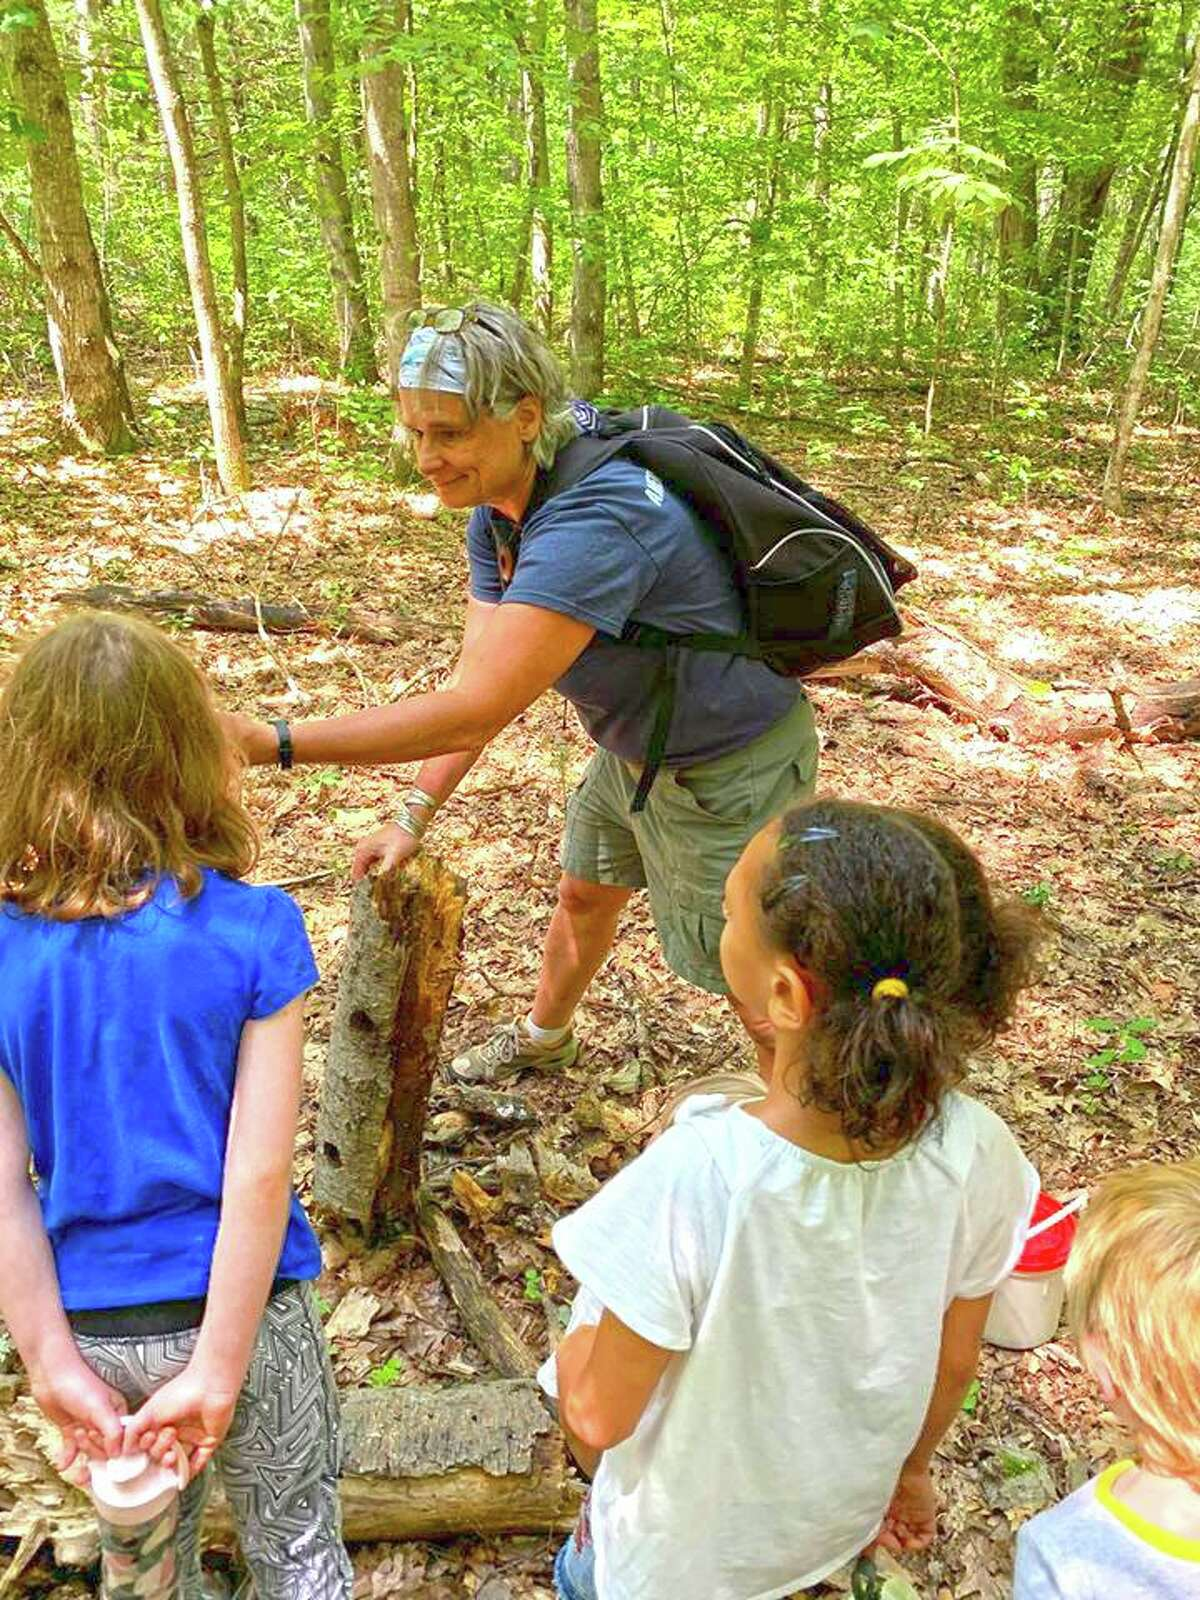 Summer camps are on for the summer of 2021, following guidelines so all have a safe experience. Here, at the Institute of American Indian Studies in Washington, assistant director Susan Sherf leads children in an activity pre-pandemic in 2019.